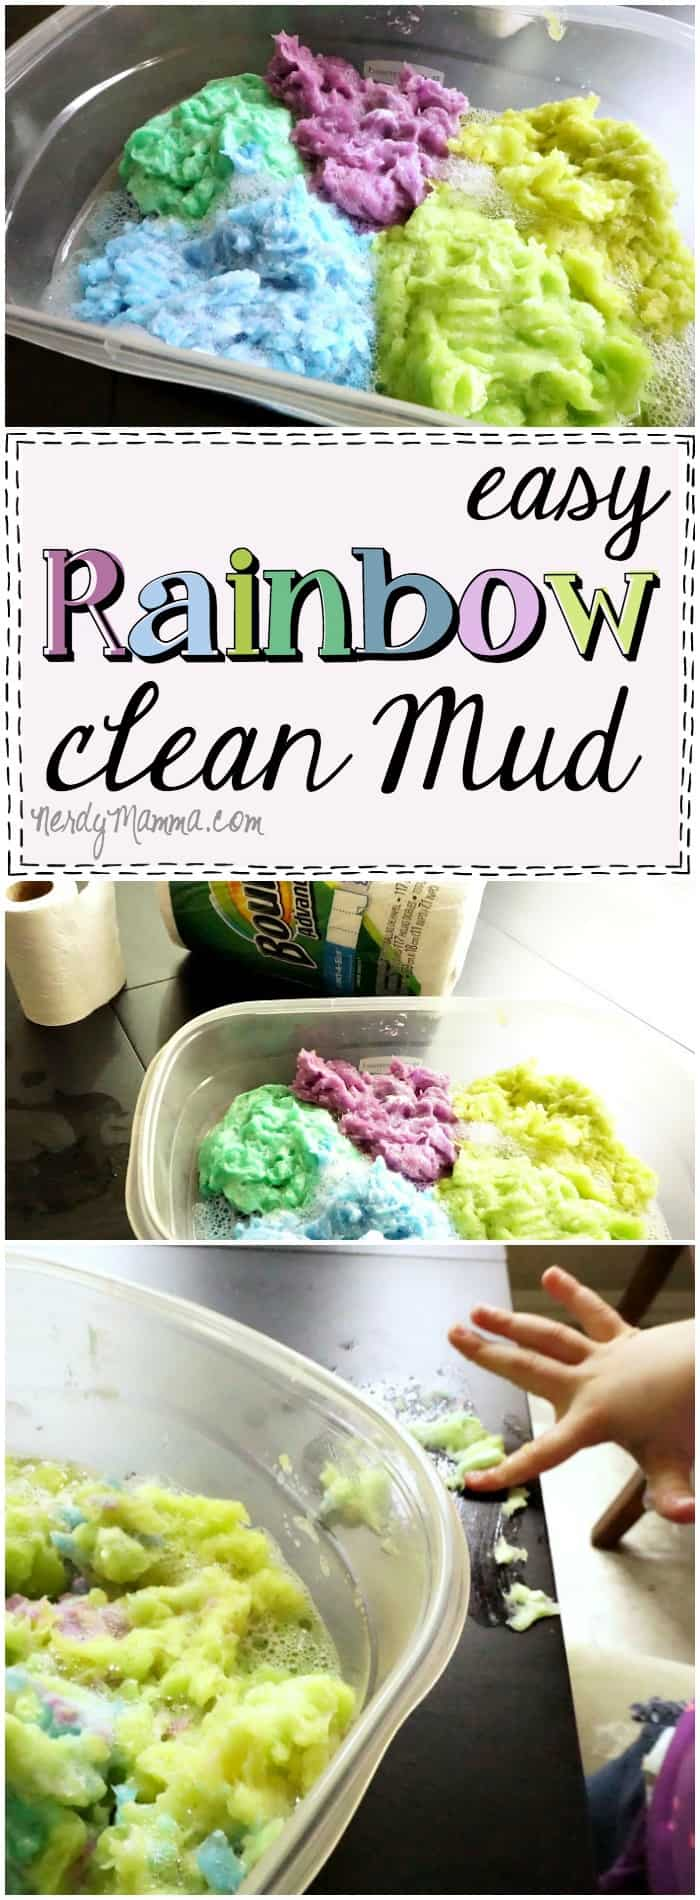 This recipe for clean mud is so awesome! I can't wait until we have a rainy day and I can make this for the kids...I'm totally saving this pin!